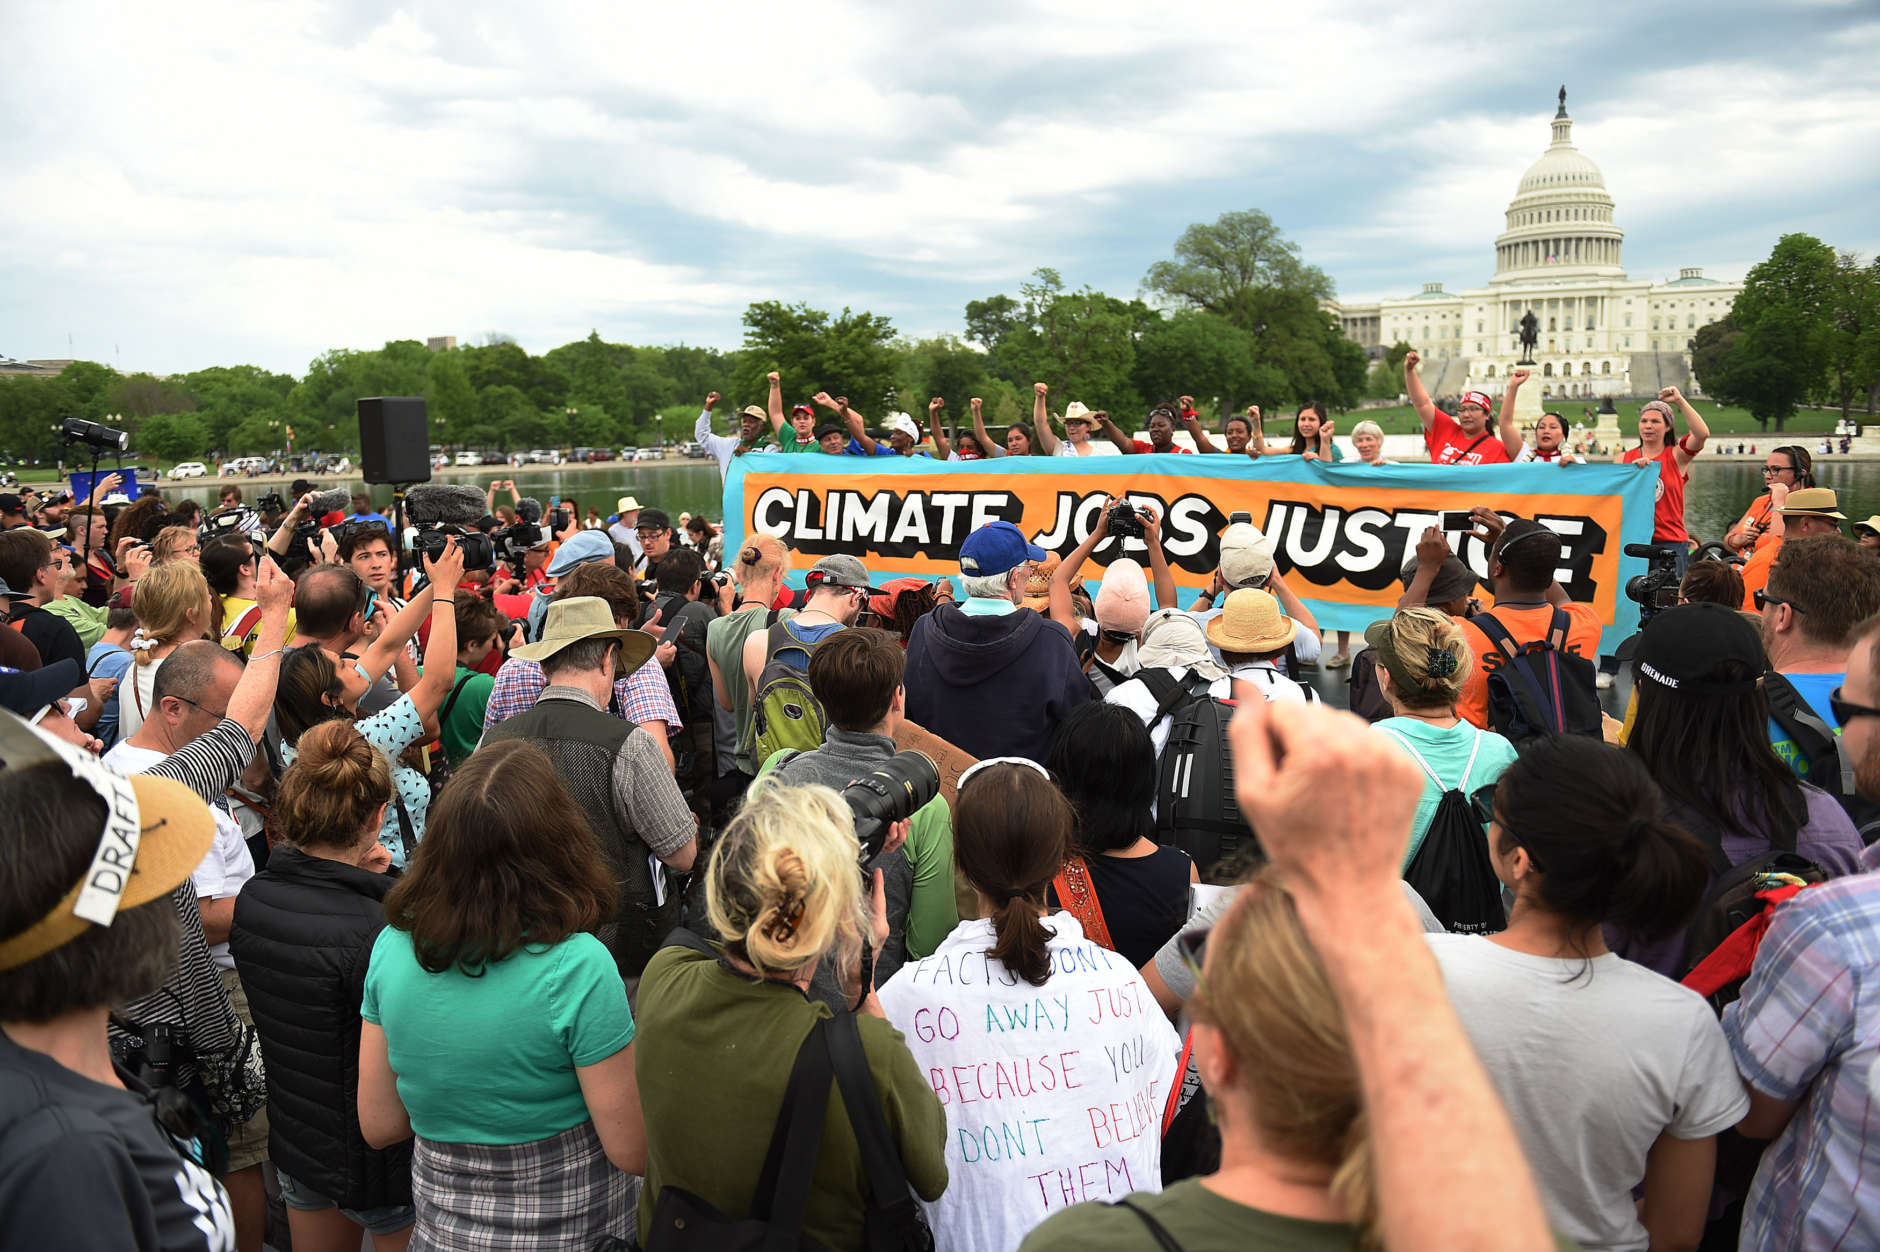 People gather near the U.S. Capitol for the People's Climate Movement before marching to the White House to protest President Donald Trump's enviromental policies April 29, 2017 in Washington, DC. Demonstrators across the country are gathering to demand  a clean energy economy. (Photo by Astrid Riecken/Getty Images)